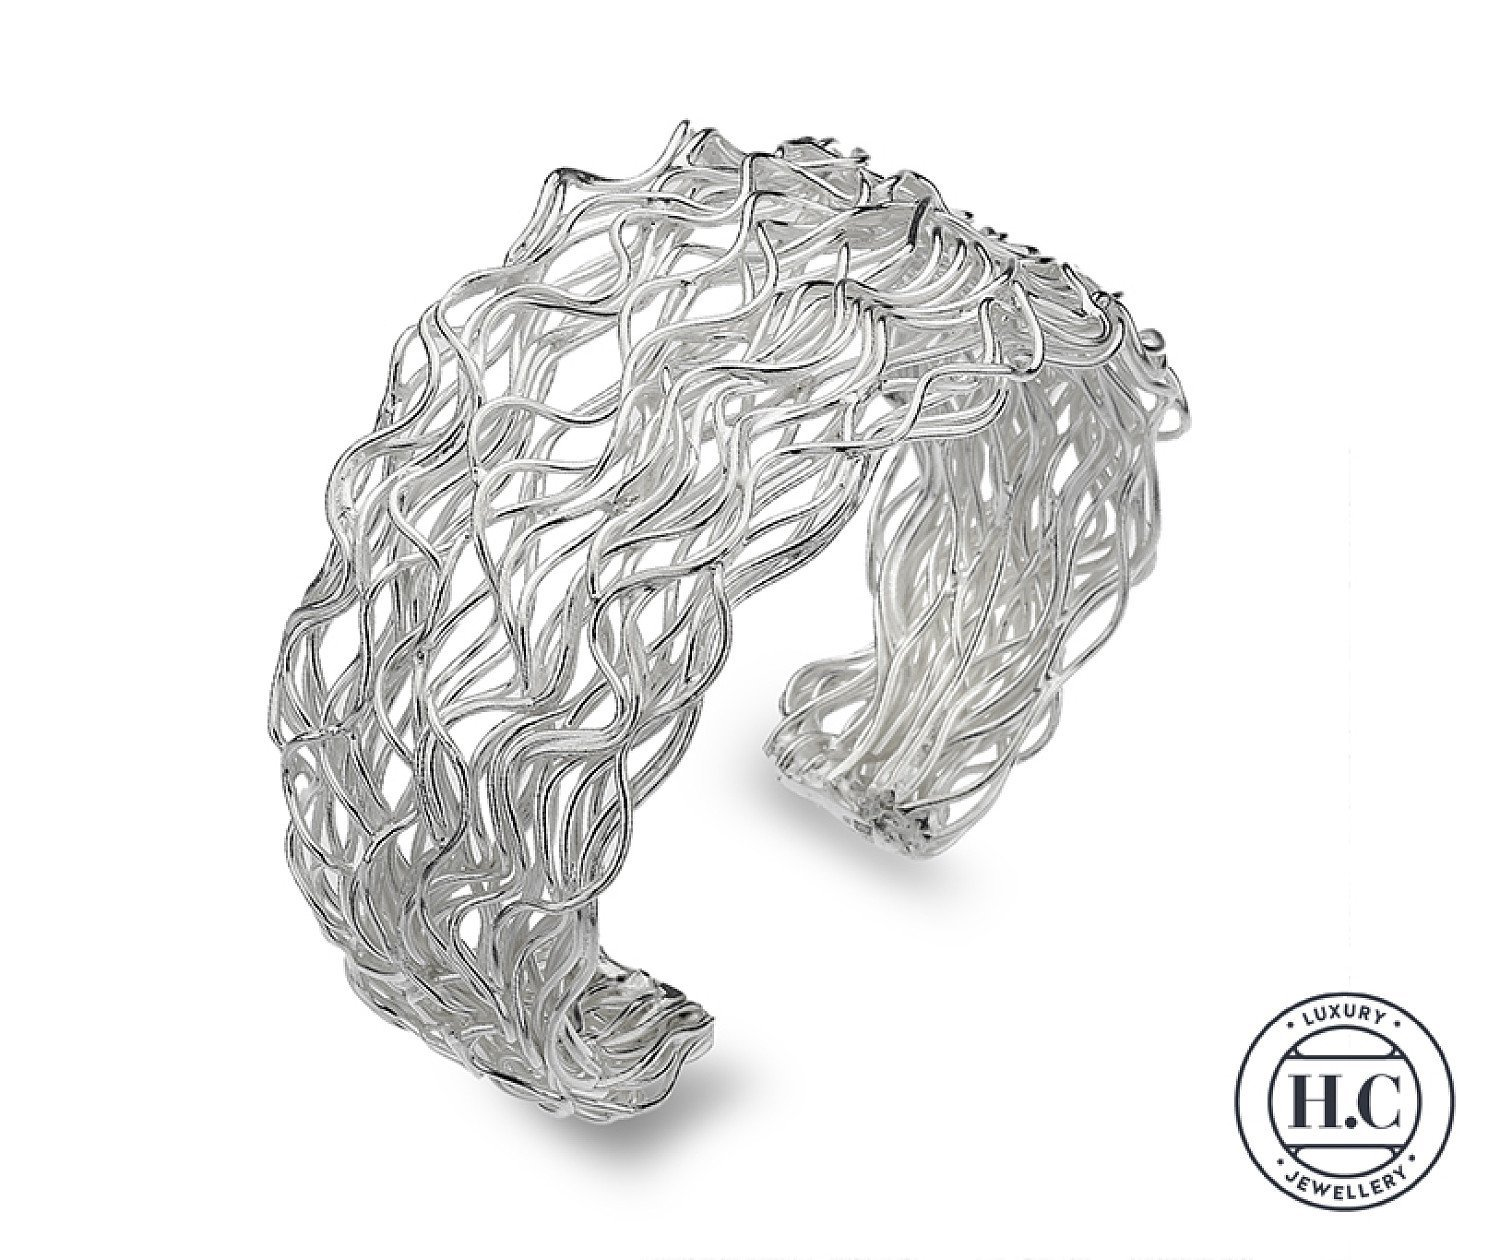 GORGEOUS SILVER BANGLES FROM CALLIBEAU JEWELLERY